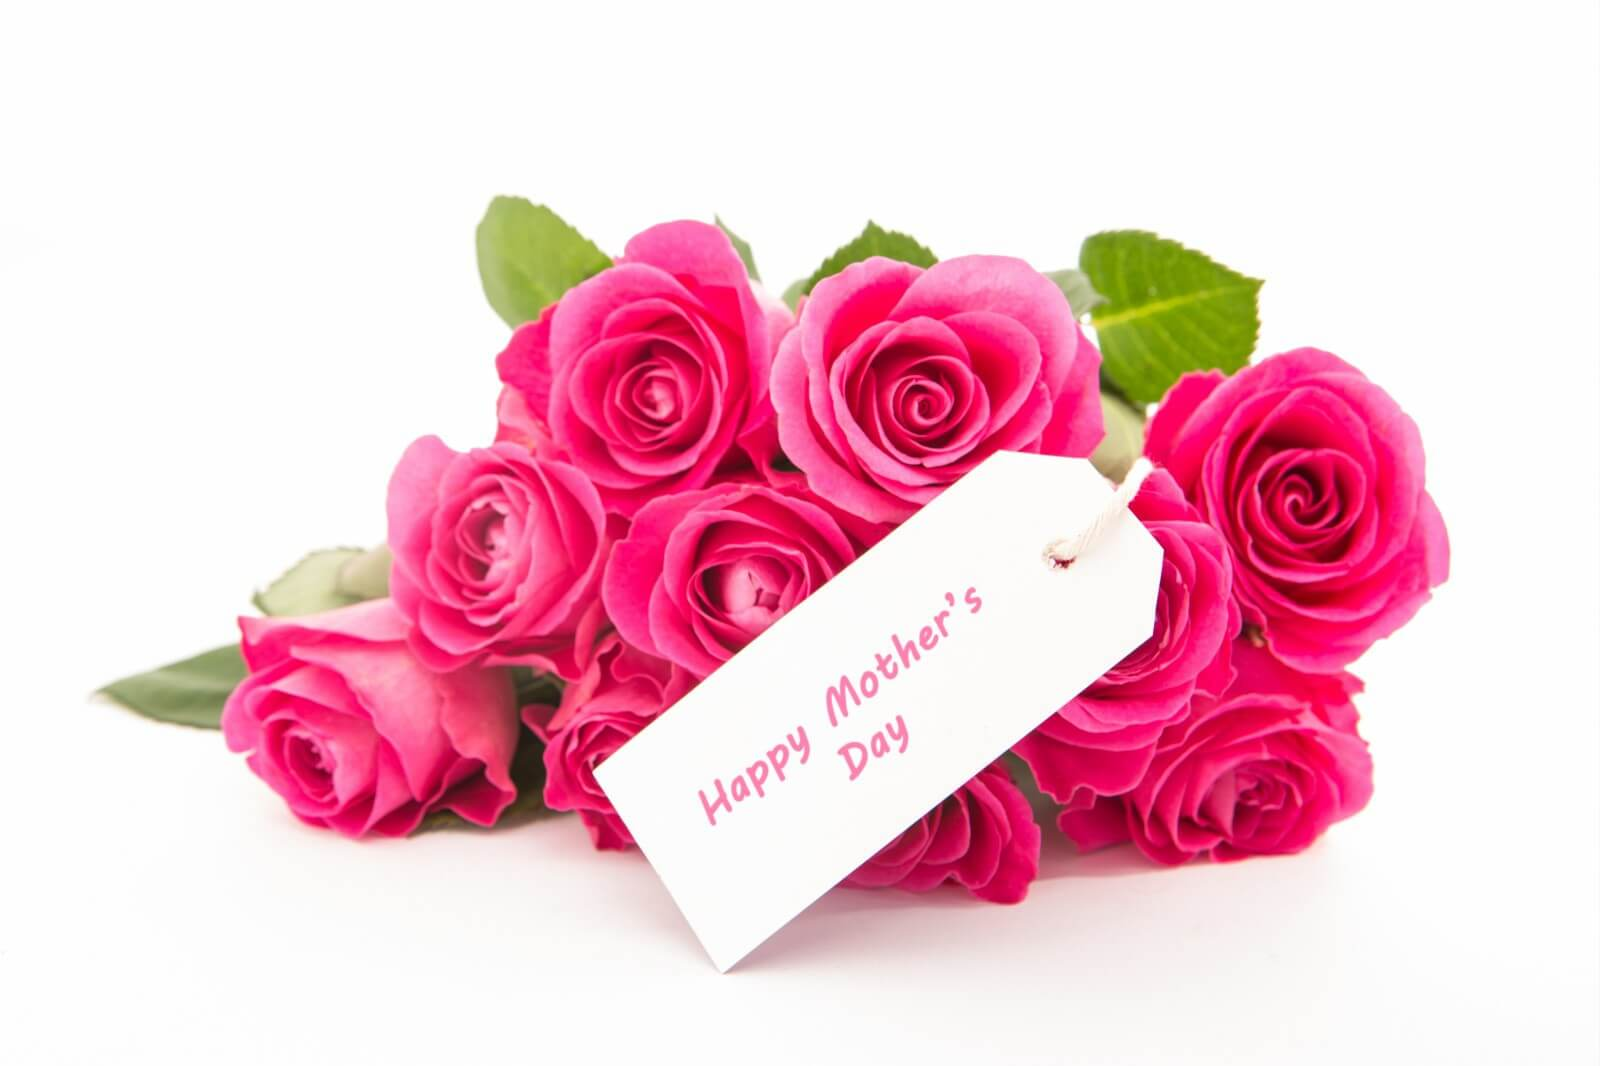 happy mothers day wishes roses hd wallpaper desktop